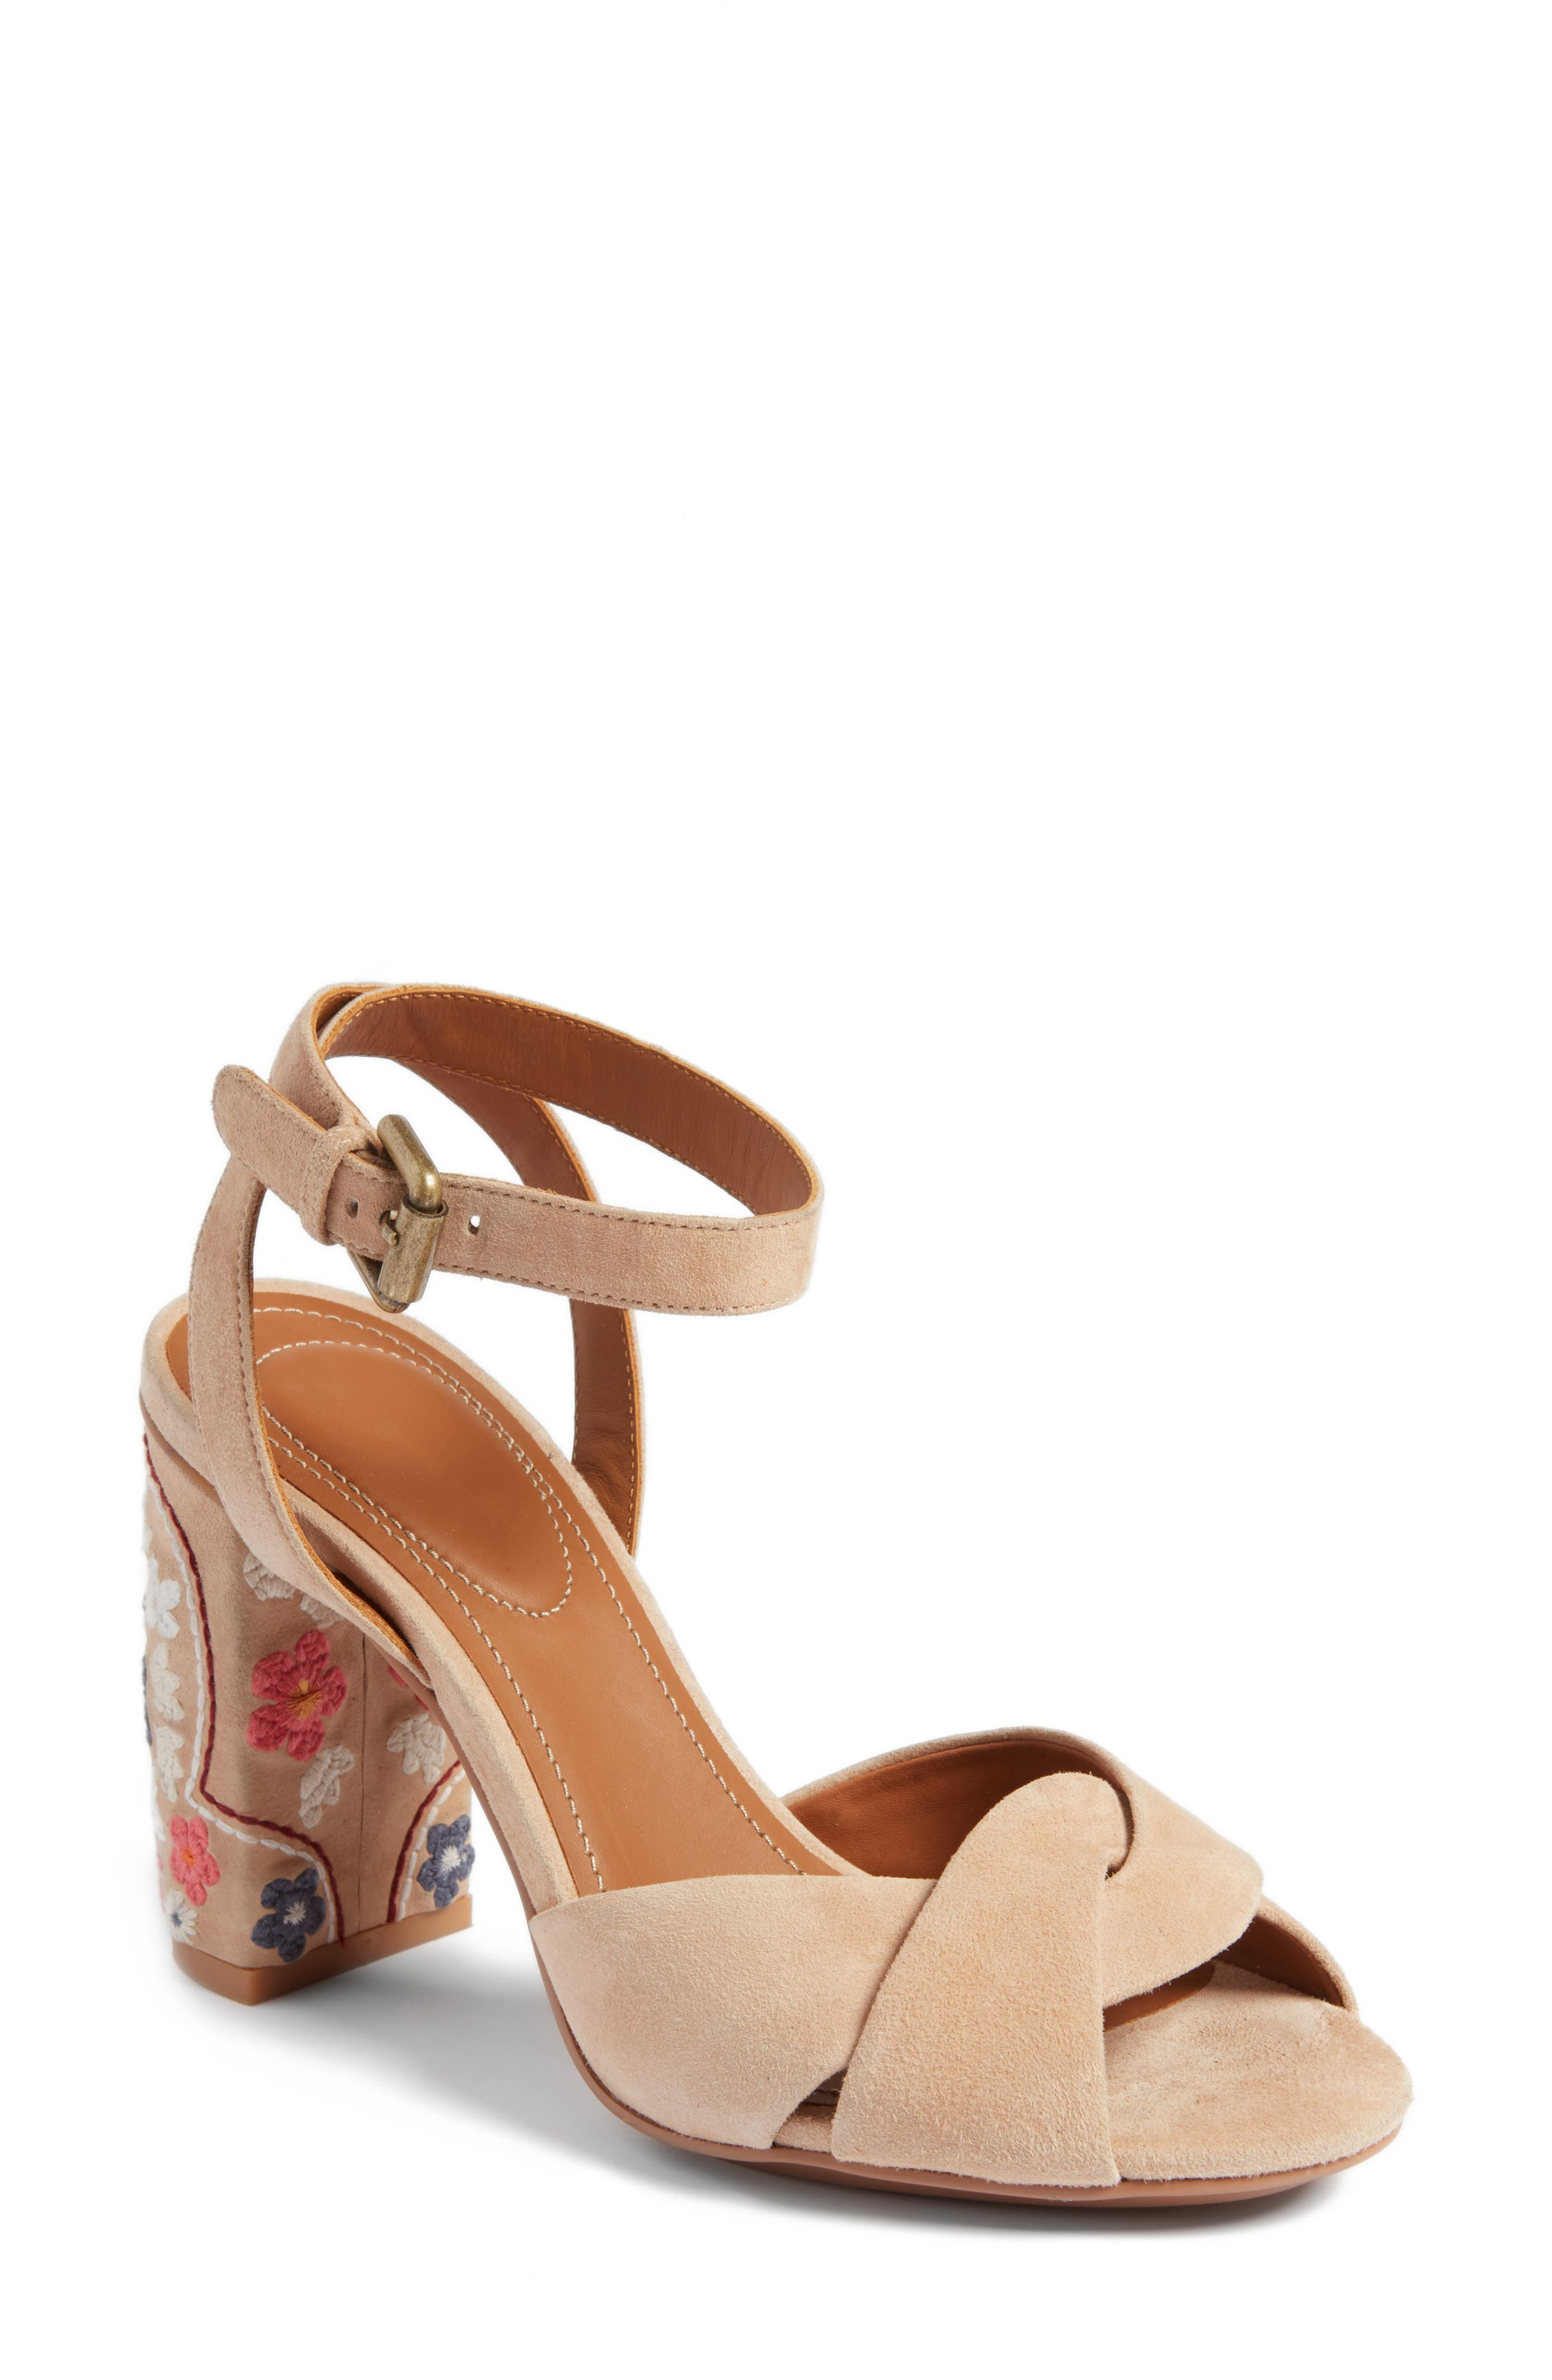 See by Chloé Gayla Embroidered Block Heel Sandal (Women)